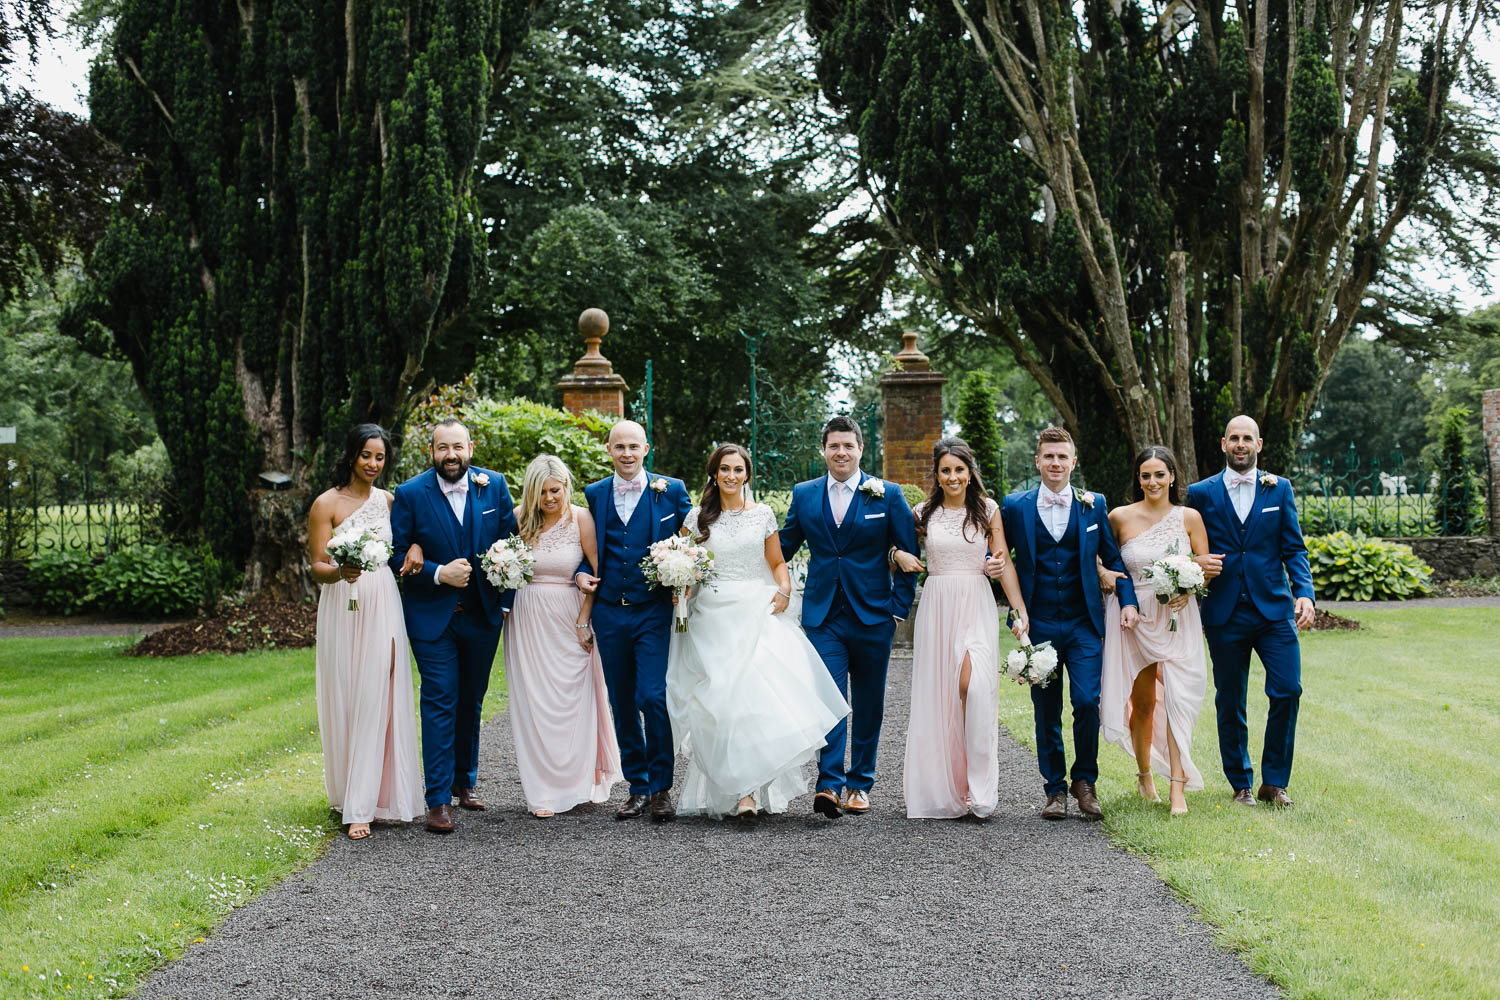 Bridal Party Photo In Walled Garden At Tankardstown House